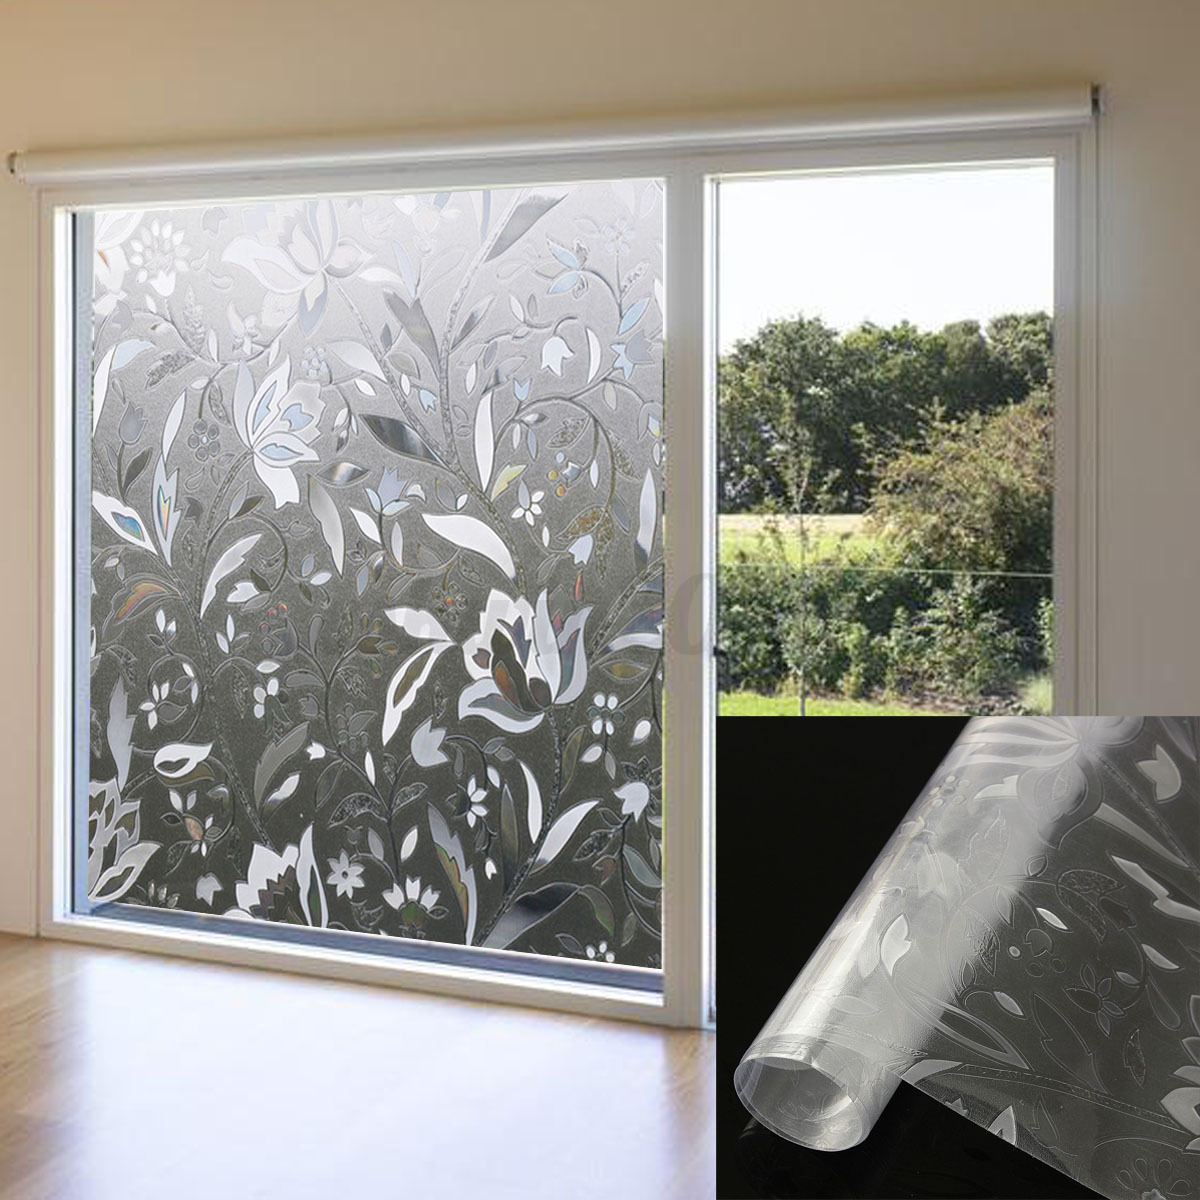 45x100cm recyclable frosted glass home window film 3d. Black Bedroom Furniture Sets. Home Design Ideas